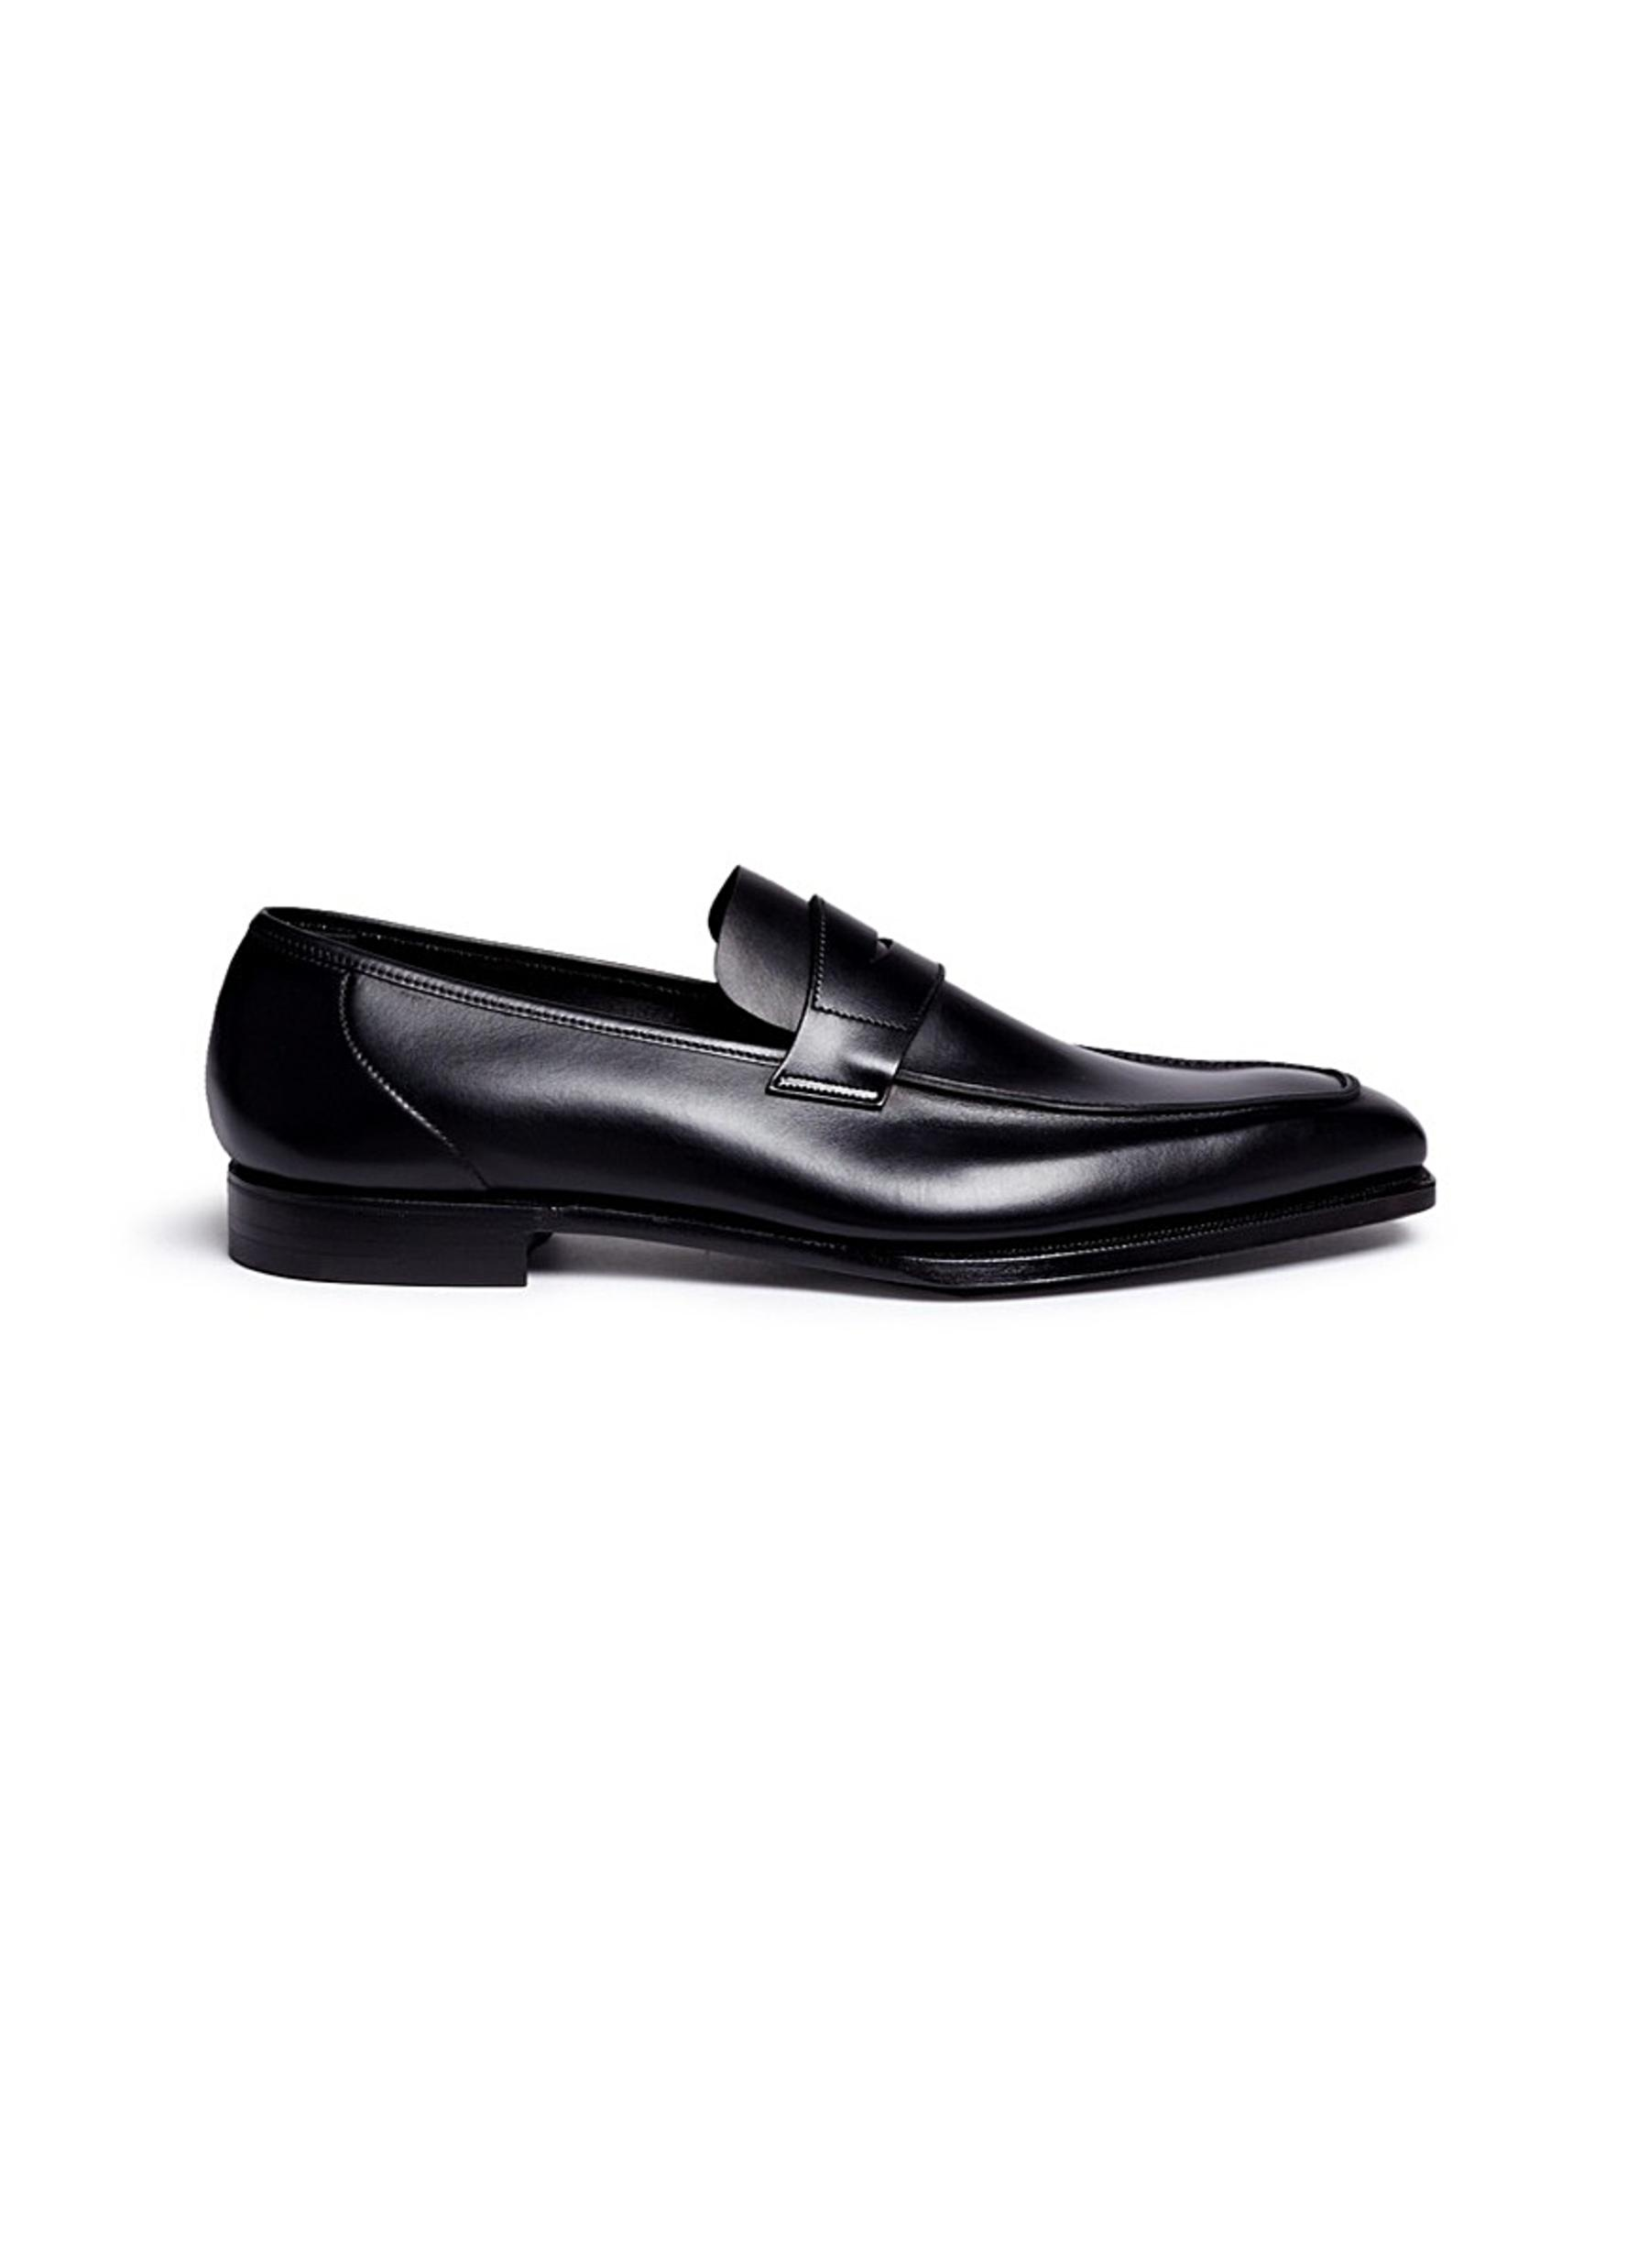 George leather penny loafers by George Cleverley